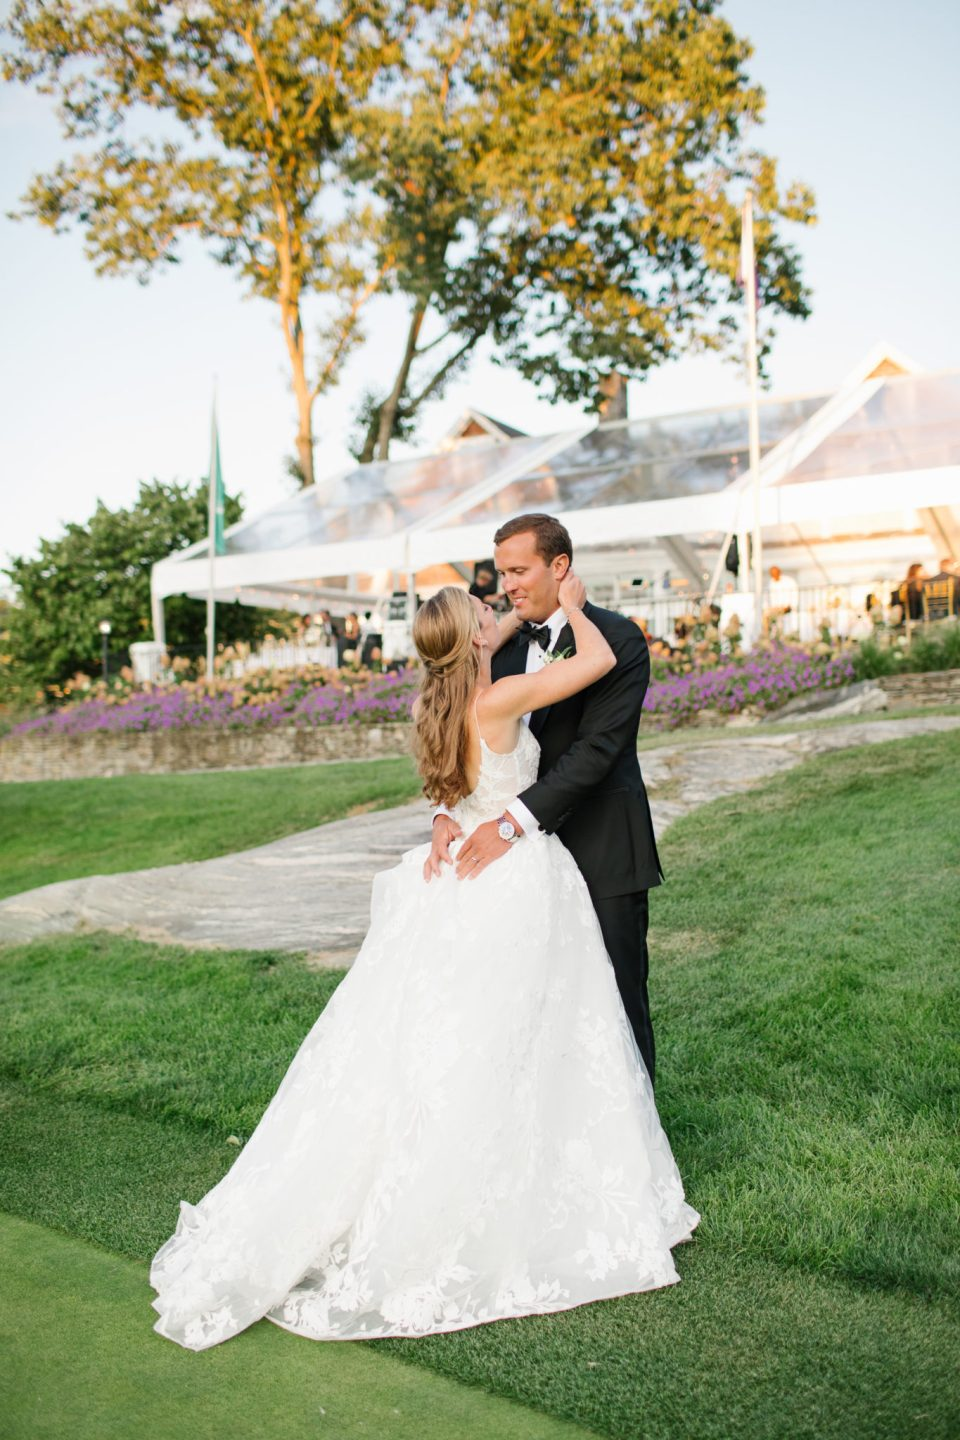 tented wedding reception behind bride and groom photographed by Ashley Mac Photographs